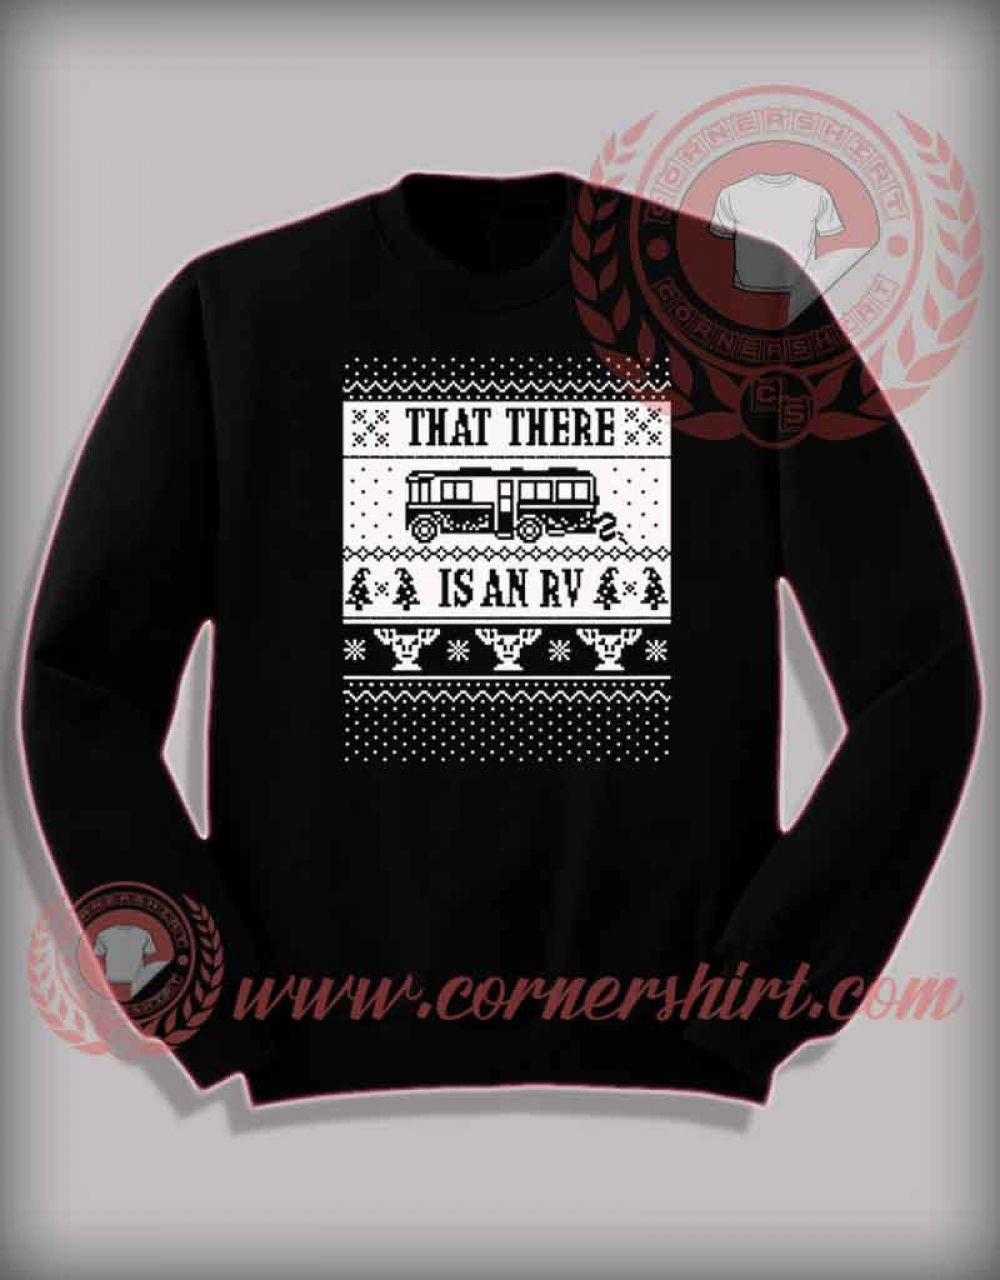 Fotos Cena Navidad Frinsa.That There Is An Rv Sweatshirt Funny Christmas Gifts For Friends